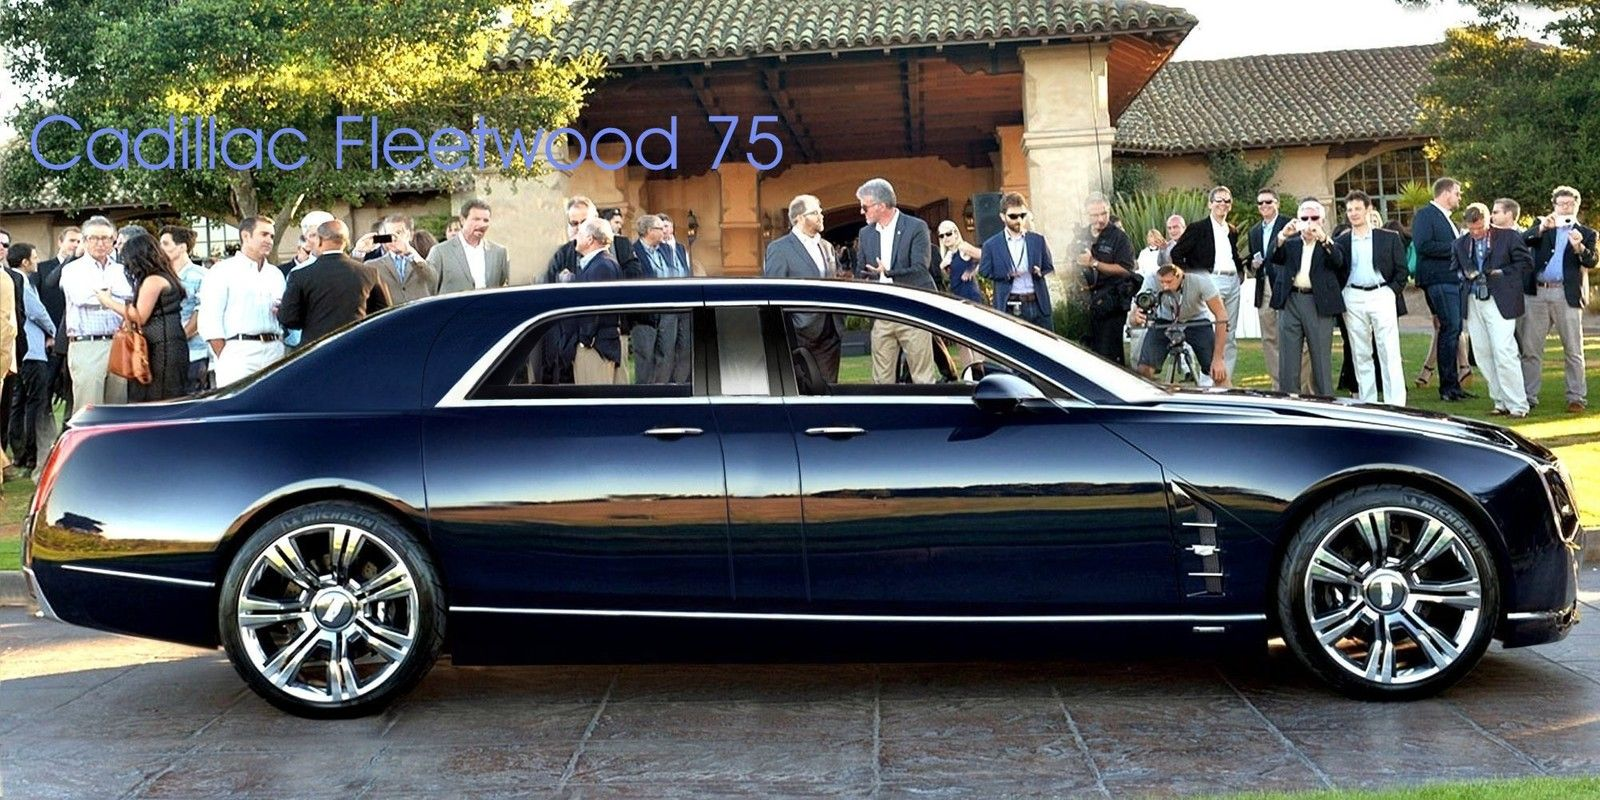 Pin on Cadillac Concepts